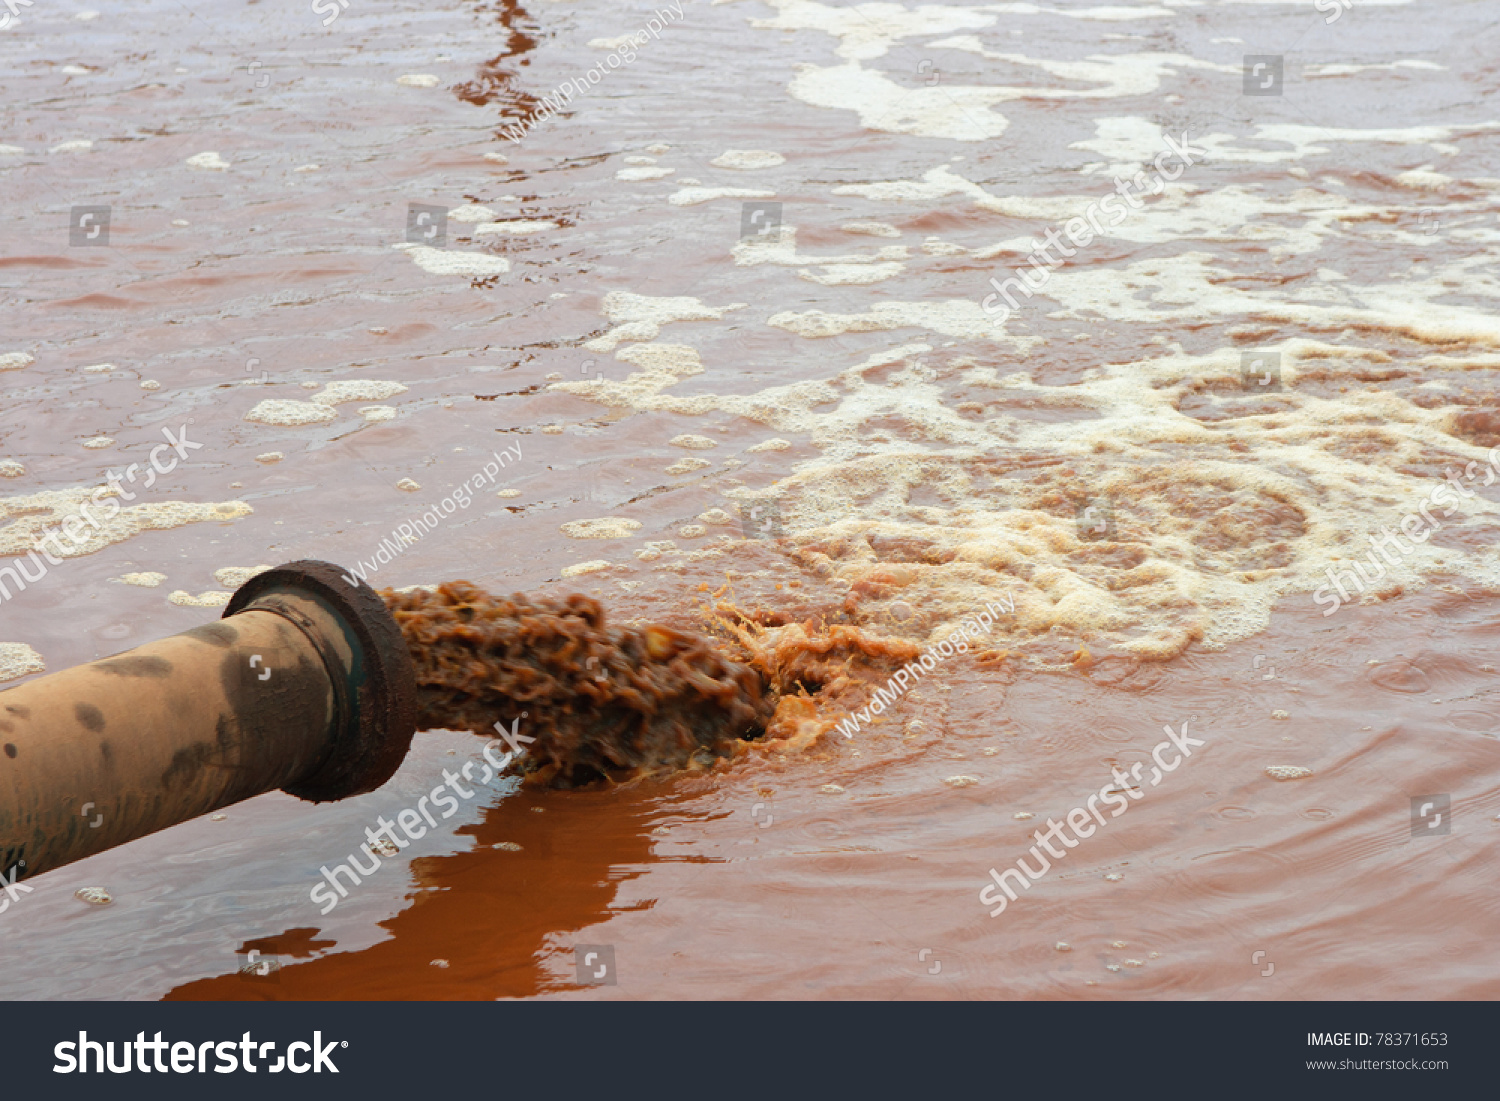 ocean pollution essay conclusion This can lead to a decreased oxygen level in the water, harming fish and other  marine organisms it can also lead to water pollution that can compromise.